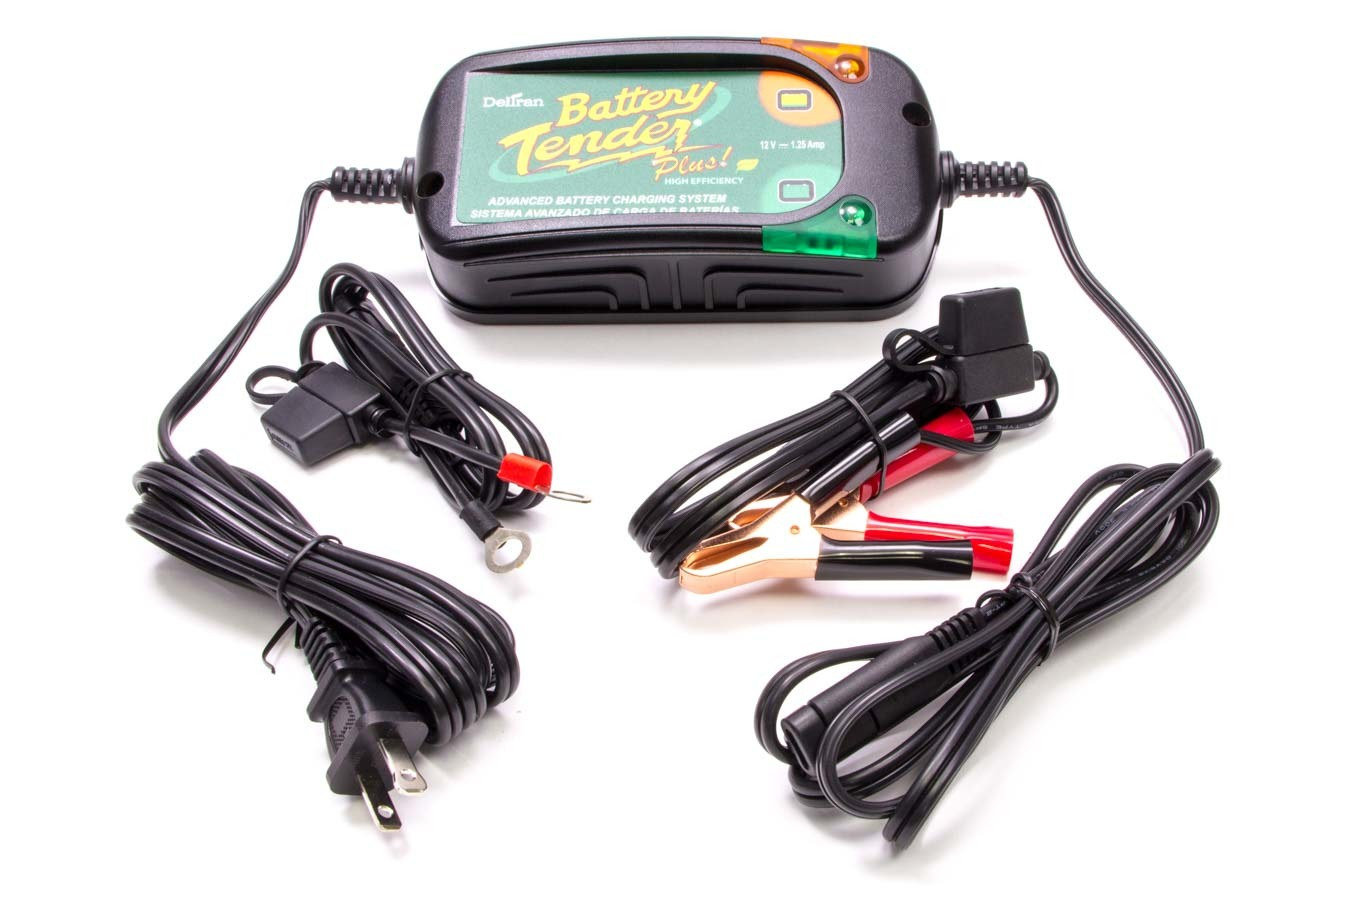 Battery Tender 022-0185G-DL-WH Battery Charger, Battery Tender Plus High Efficiency, 12V, 1.25 amp, 4 Step Charging Program, Quick Connect Harness, Each